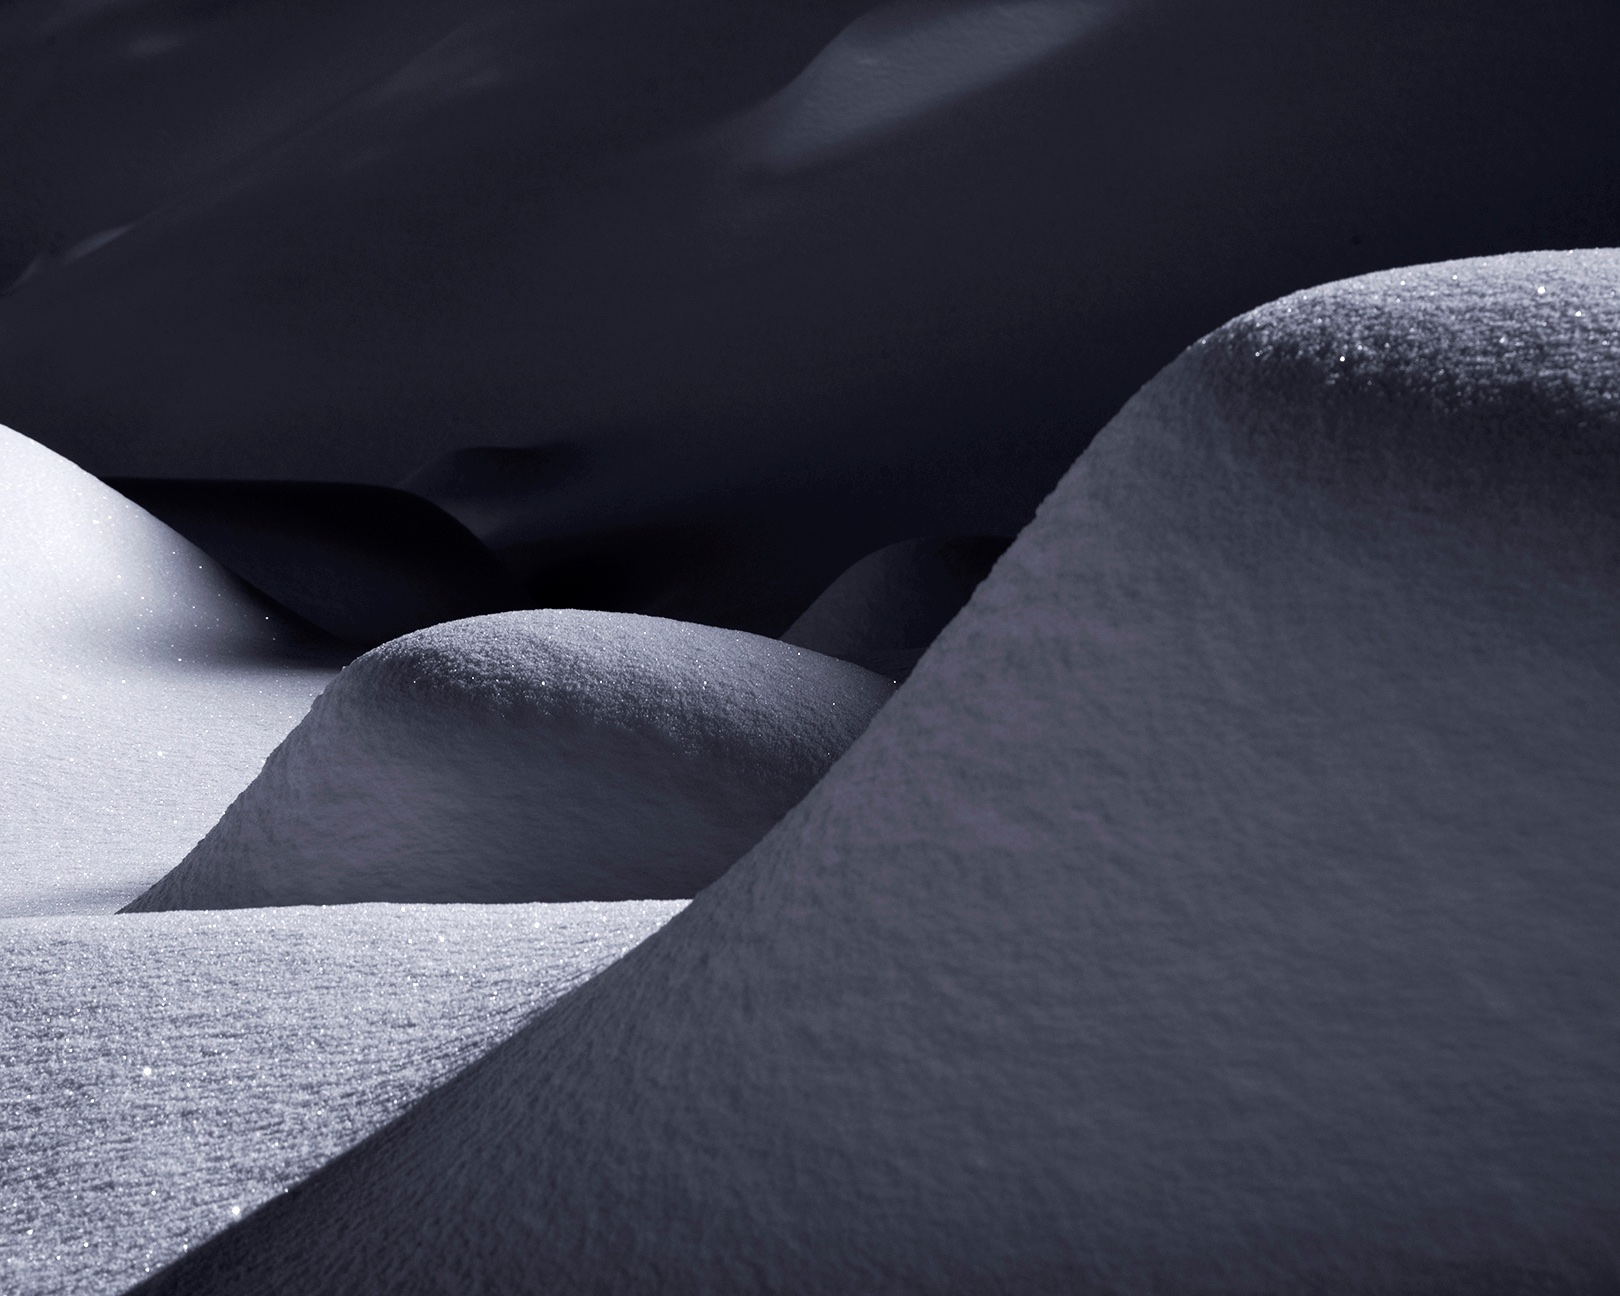 Sensuous Snow III, 2013